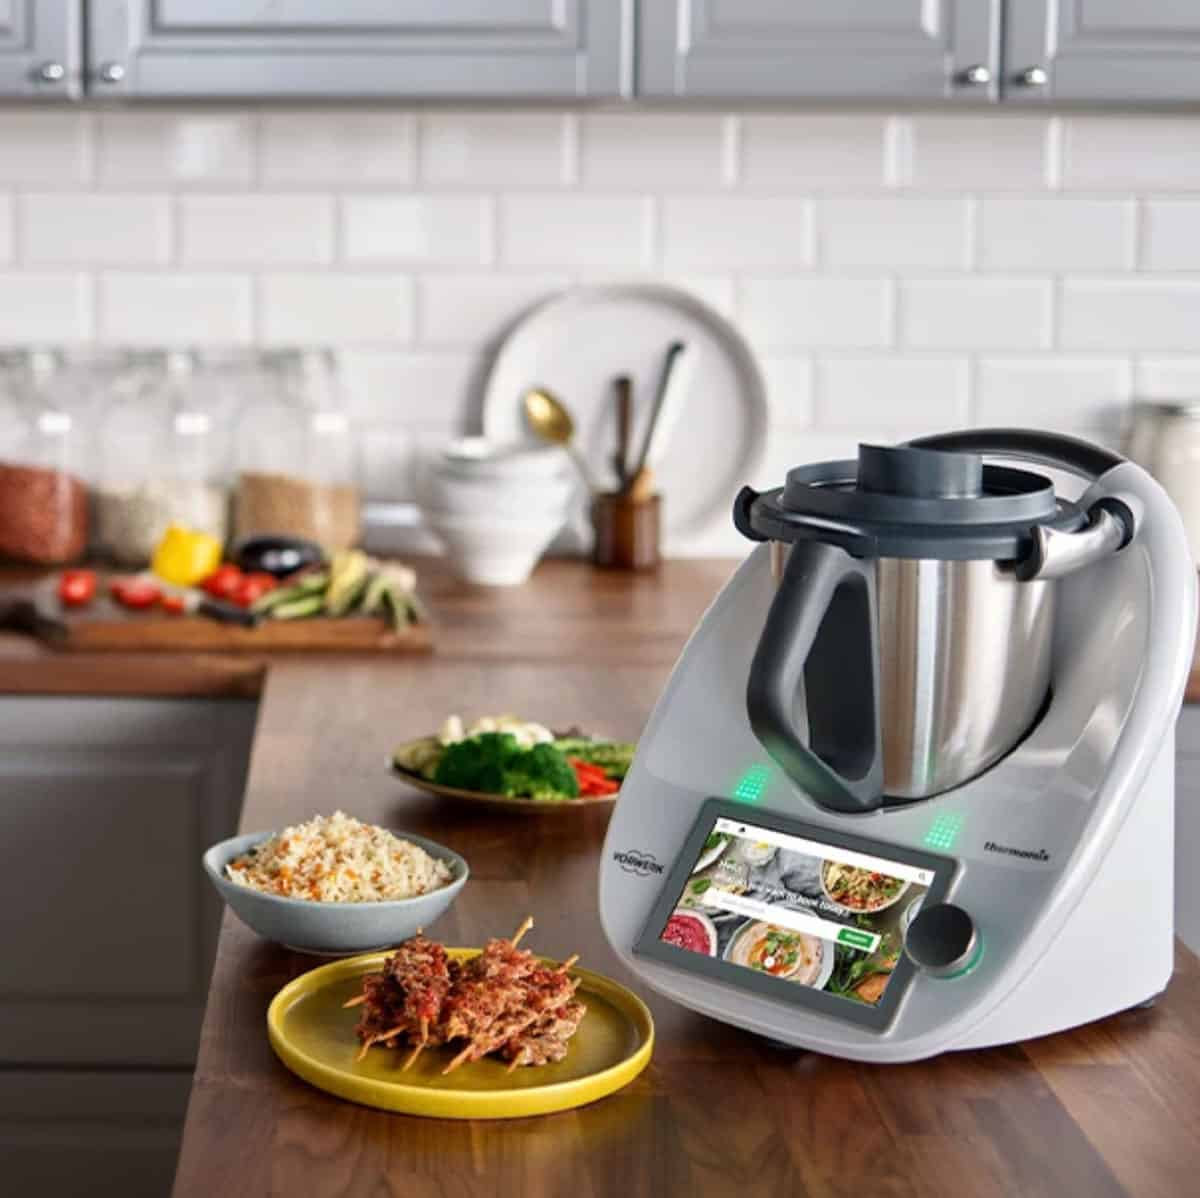 An image of a Thermomix on a kitchen bench surrounded by food.